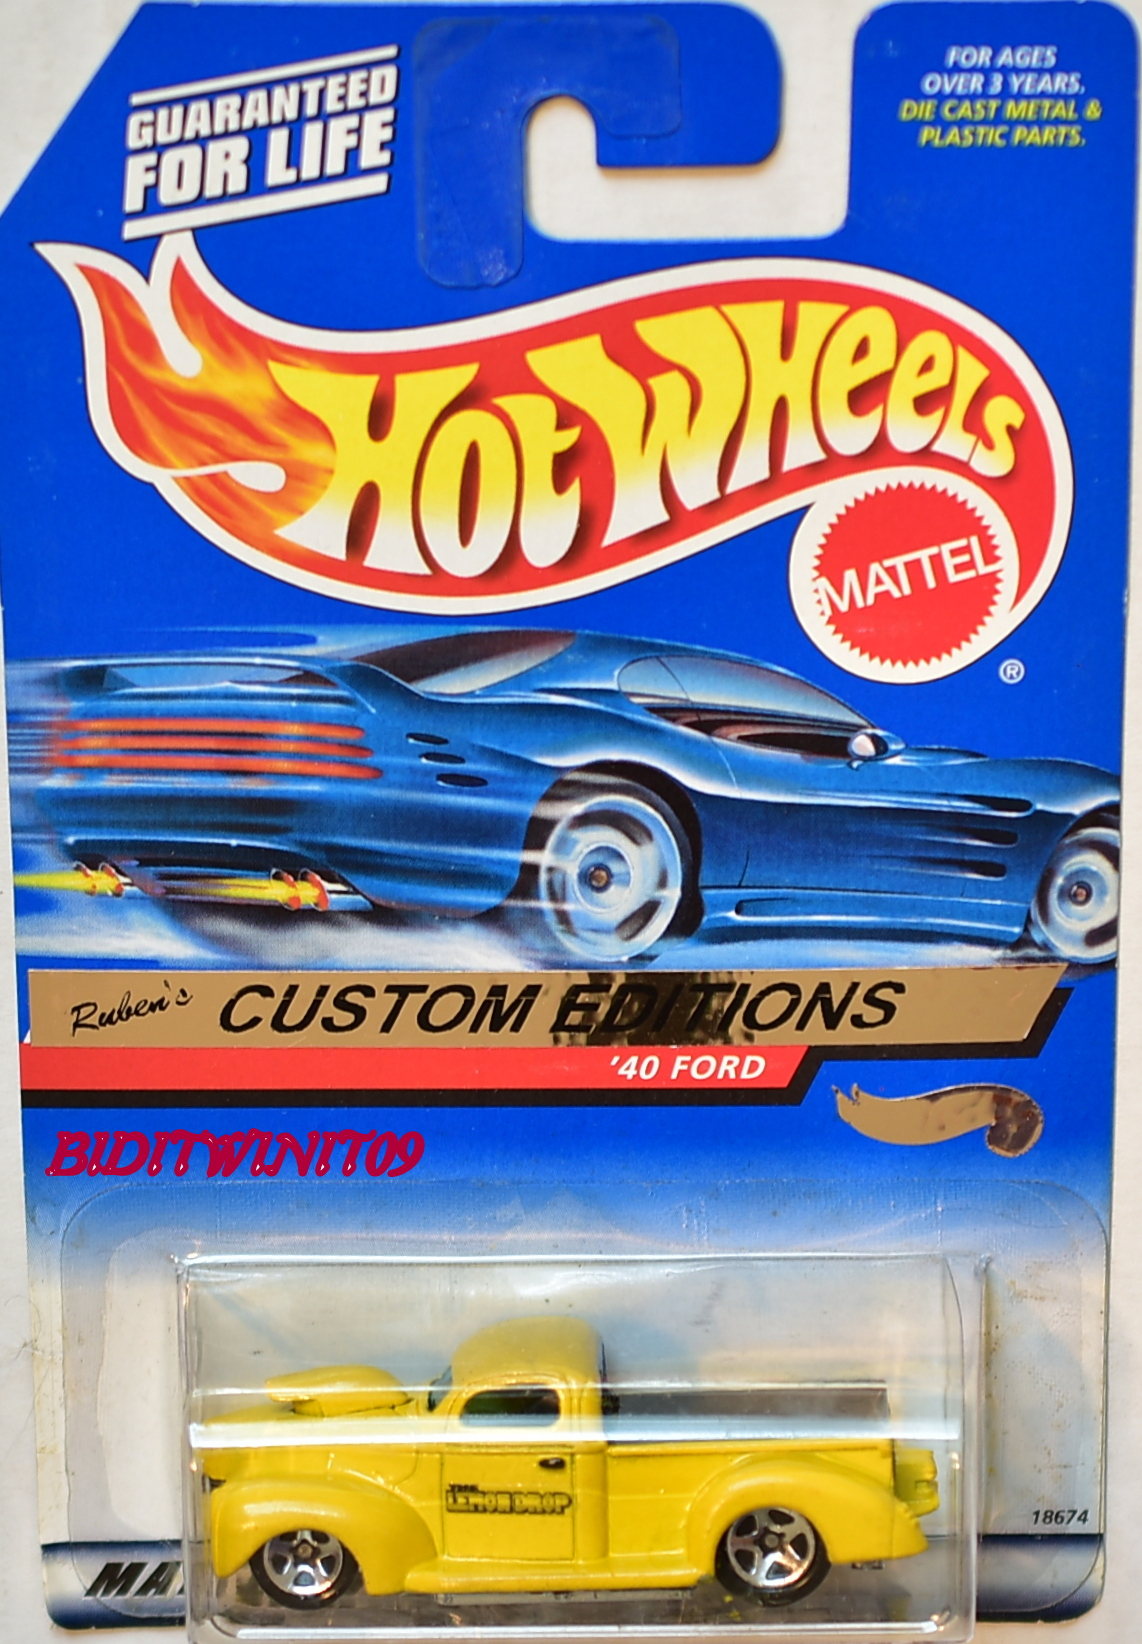 HOT WHEELS 1998 LEMON DROP RUBEN'C CUSTOM EDITIONS '40 FORD E+